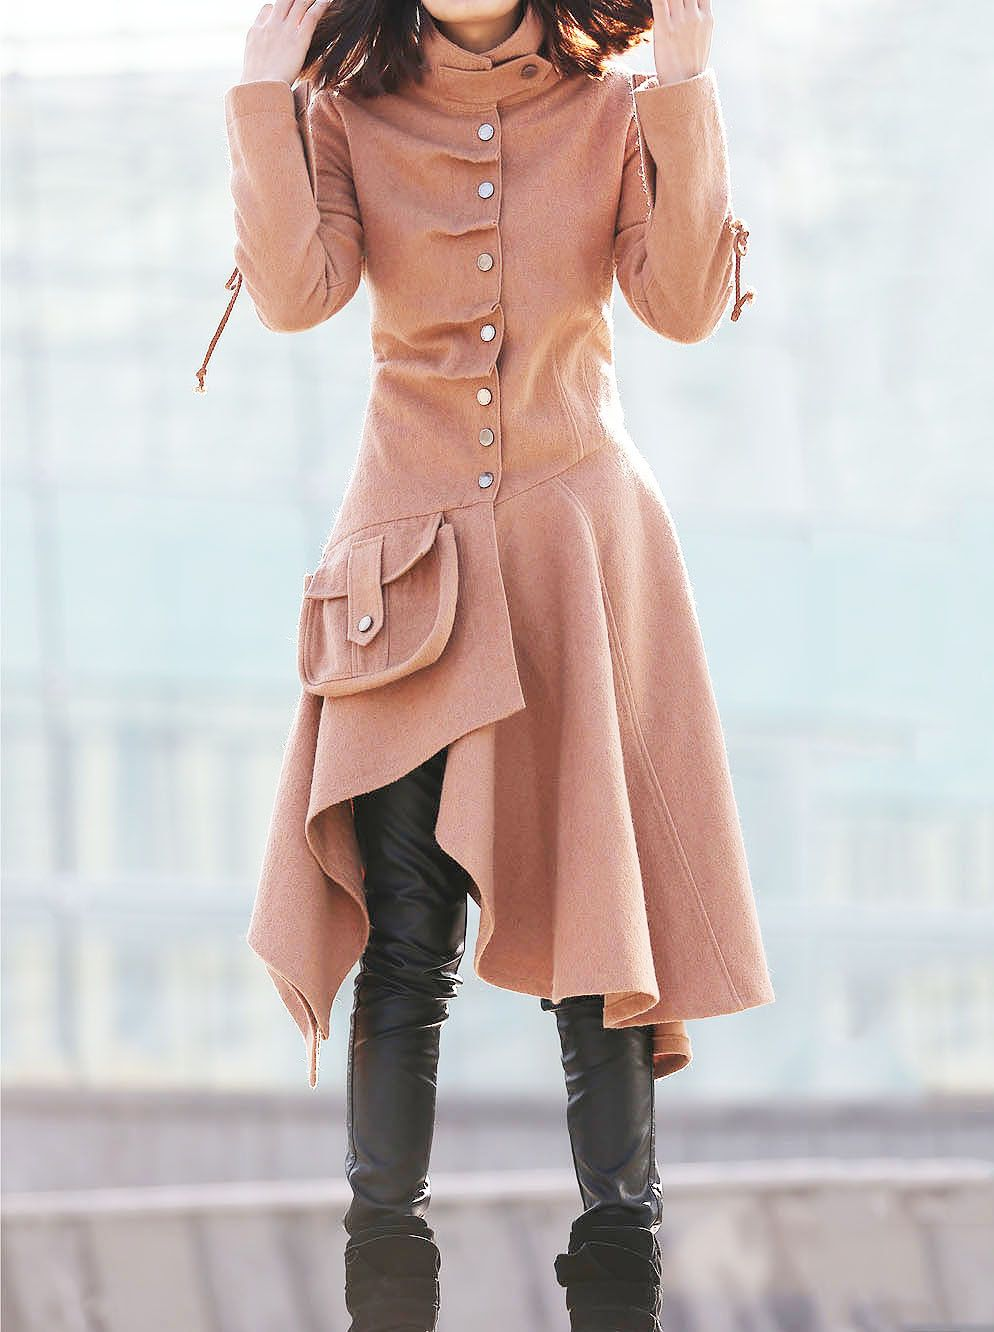 Jacket, Coat, womens jackets, Swing Coat, Asymmetrical coat, winter ...